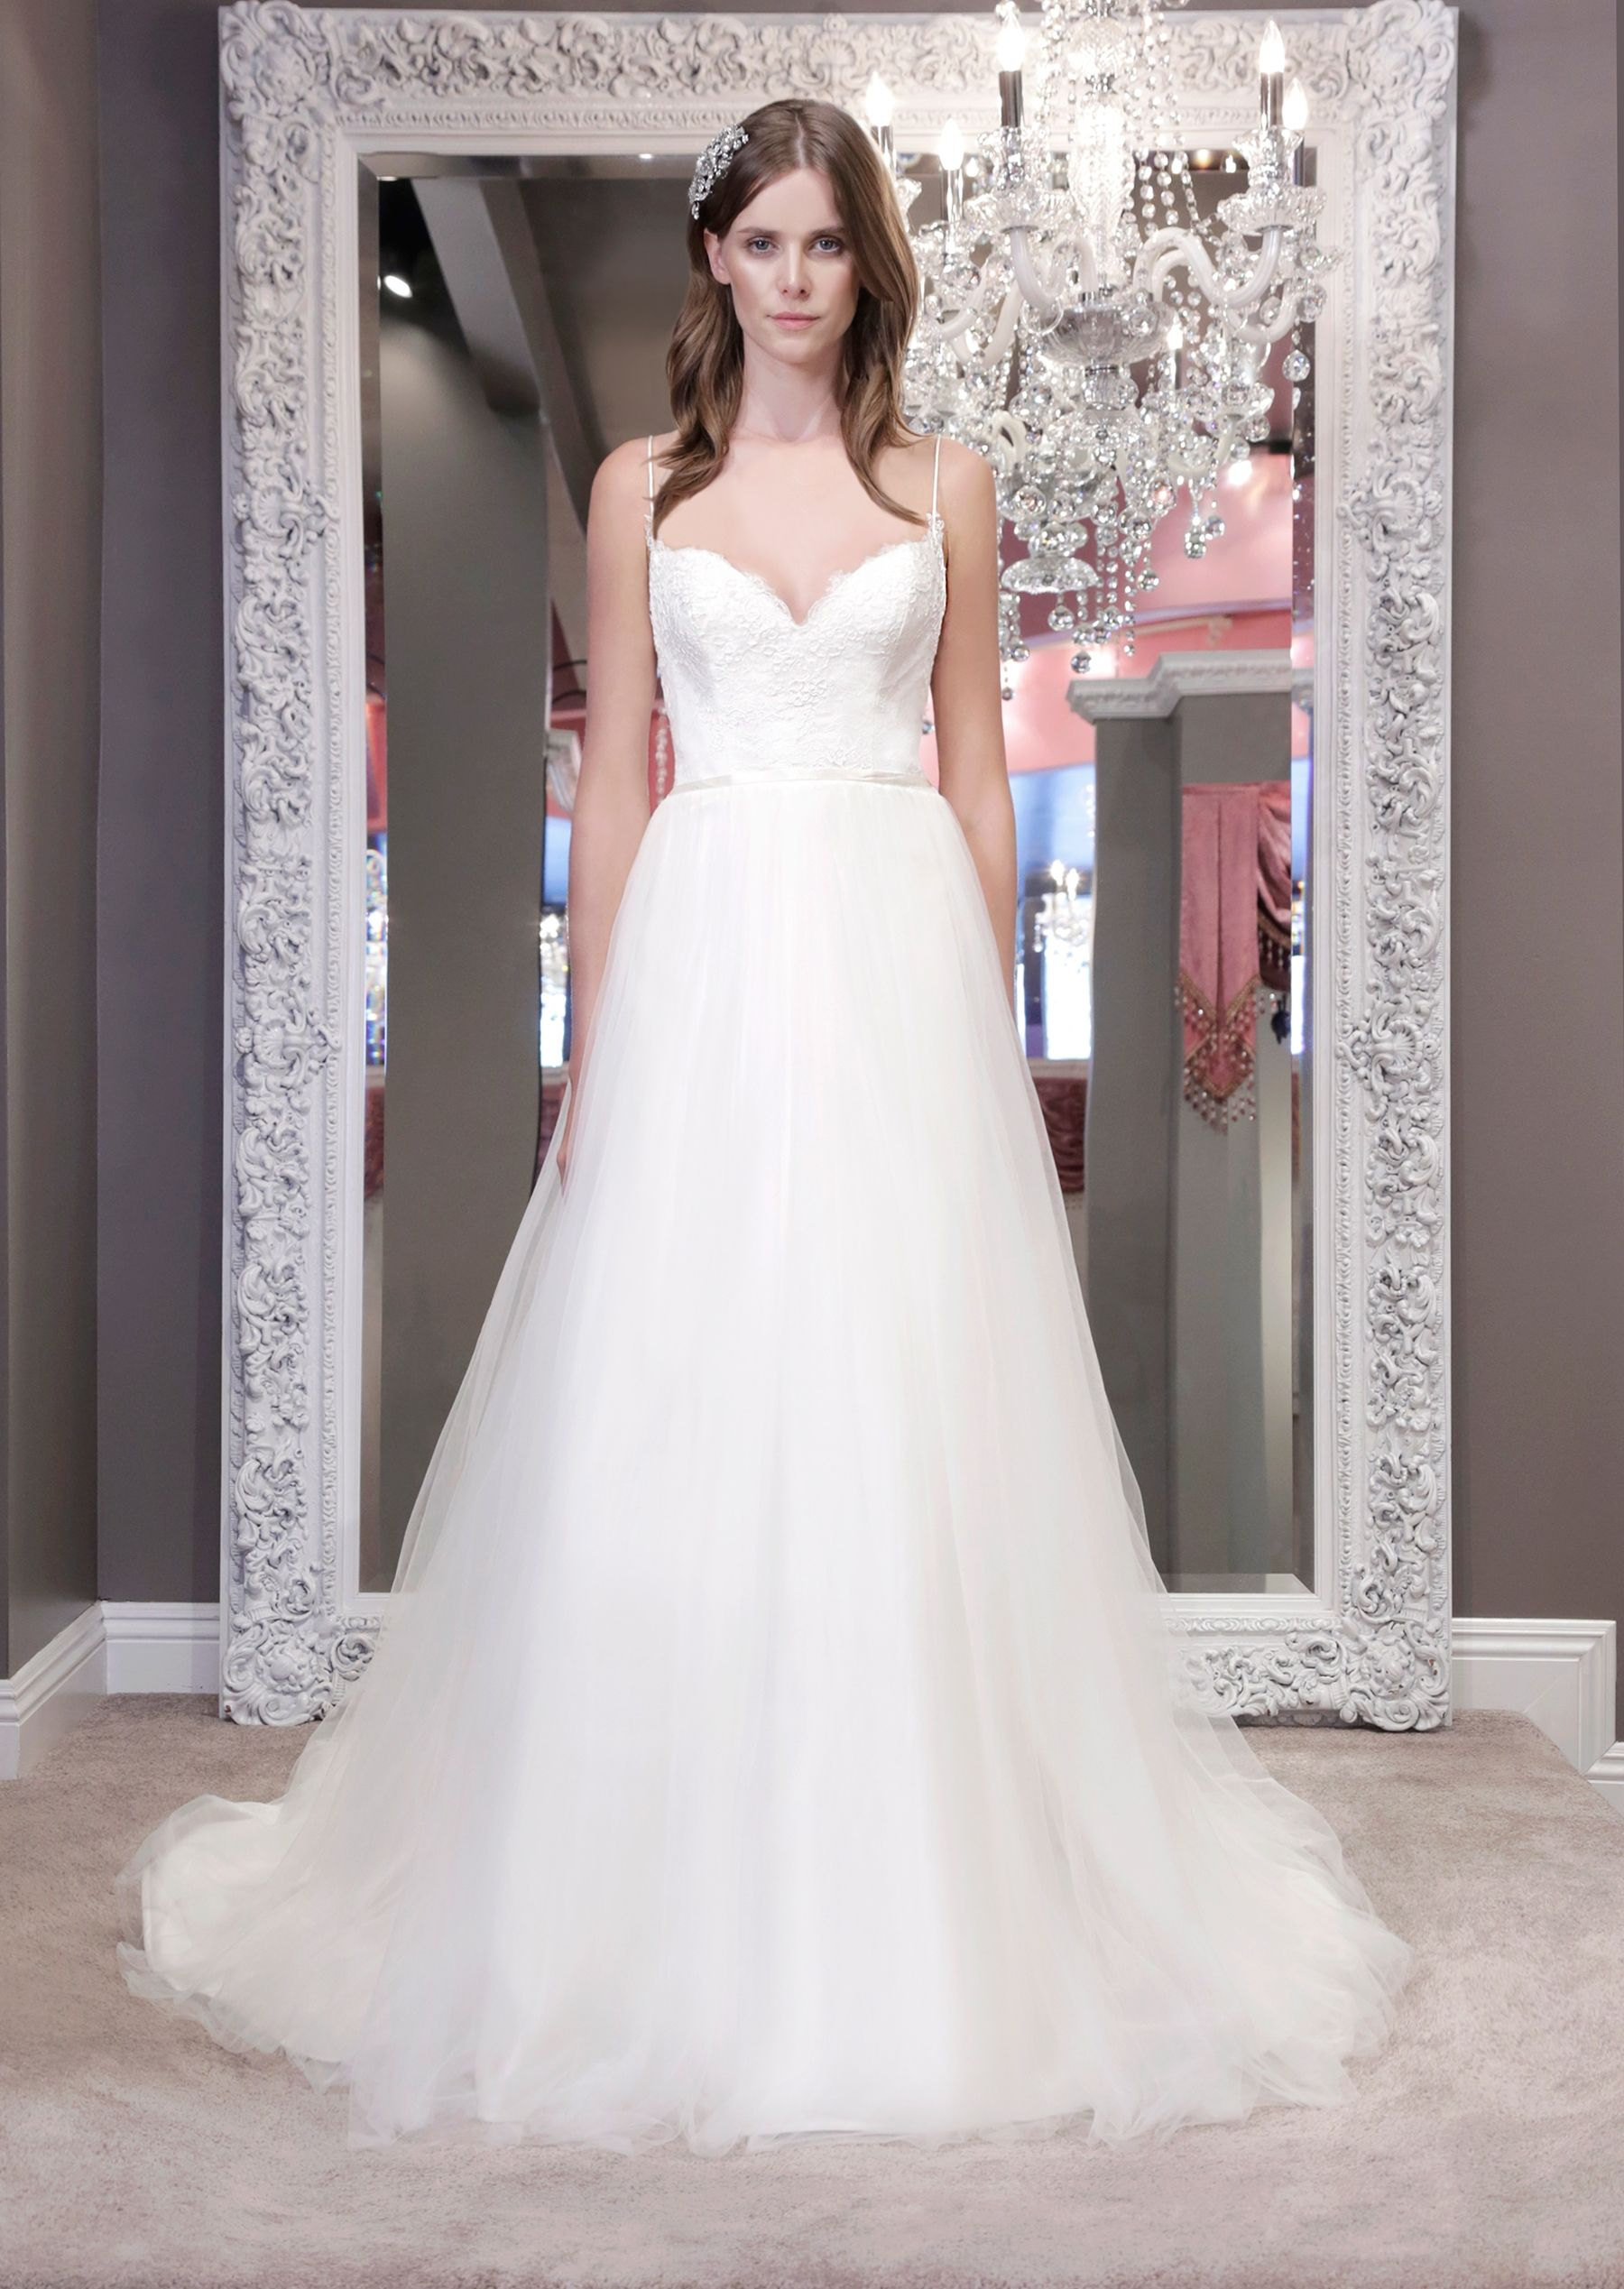 Winnie couture is a celebrity designer of wedding dresses winnie couture is a celebrity designer of wedding dresses bridesmaid dresses special occasion dresses ombrellifo Image collections